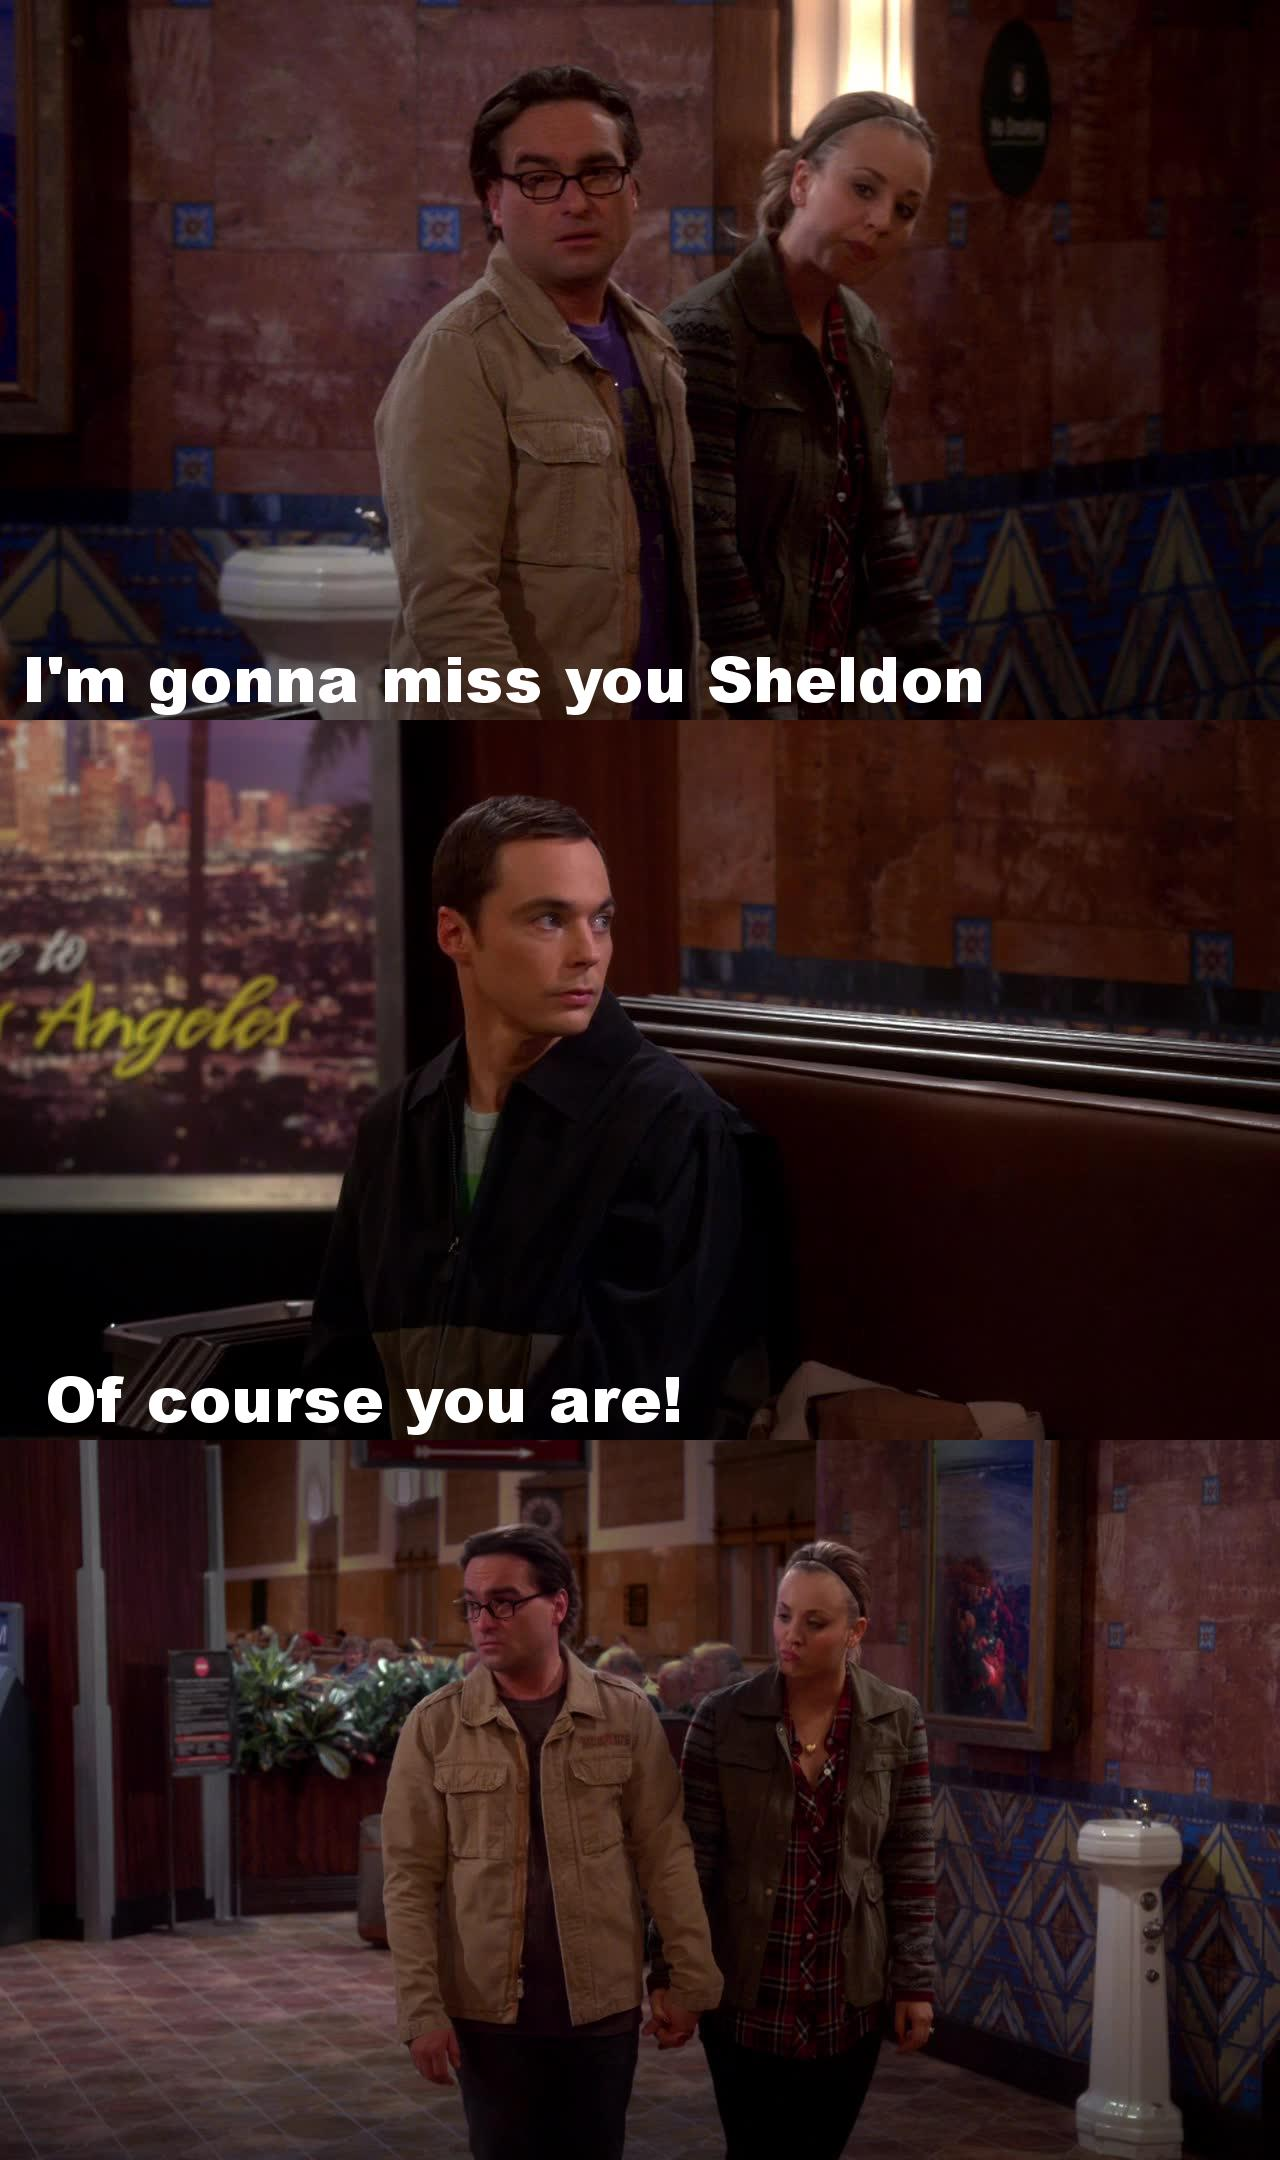 Of course we are gonna miss you Sheldon!